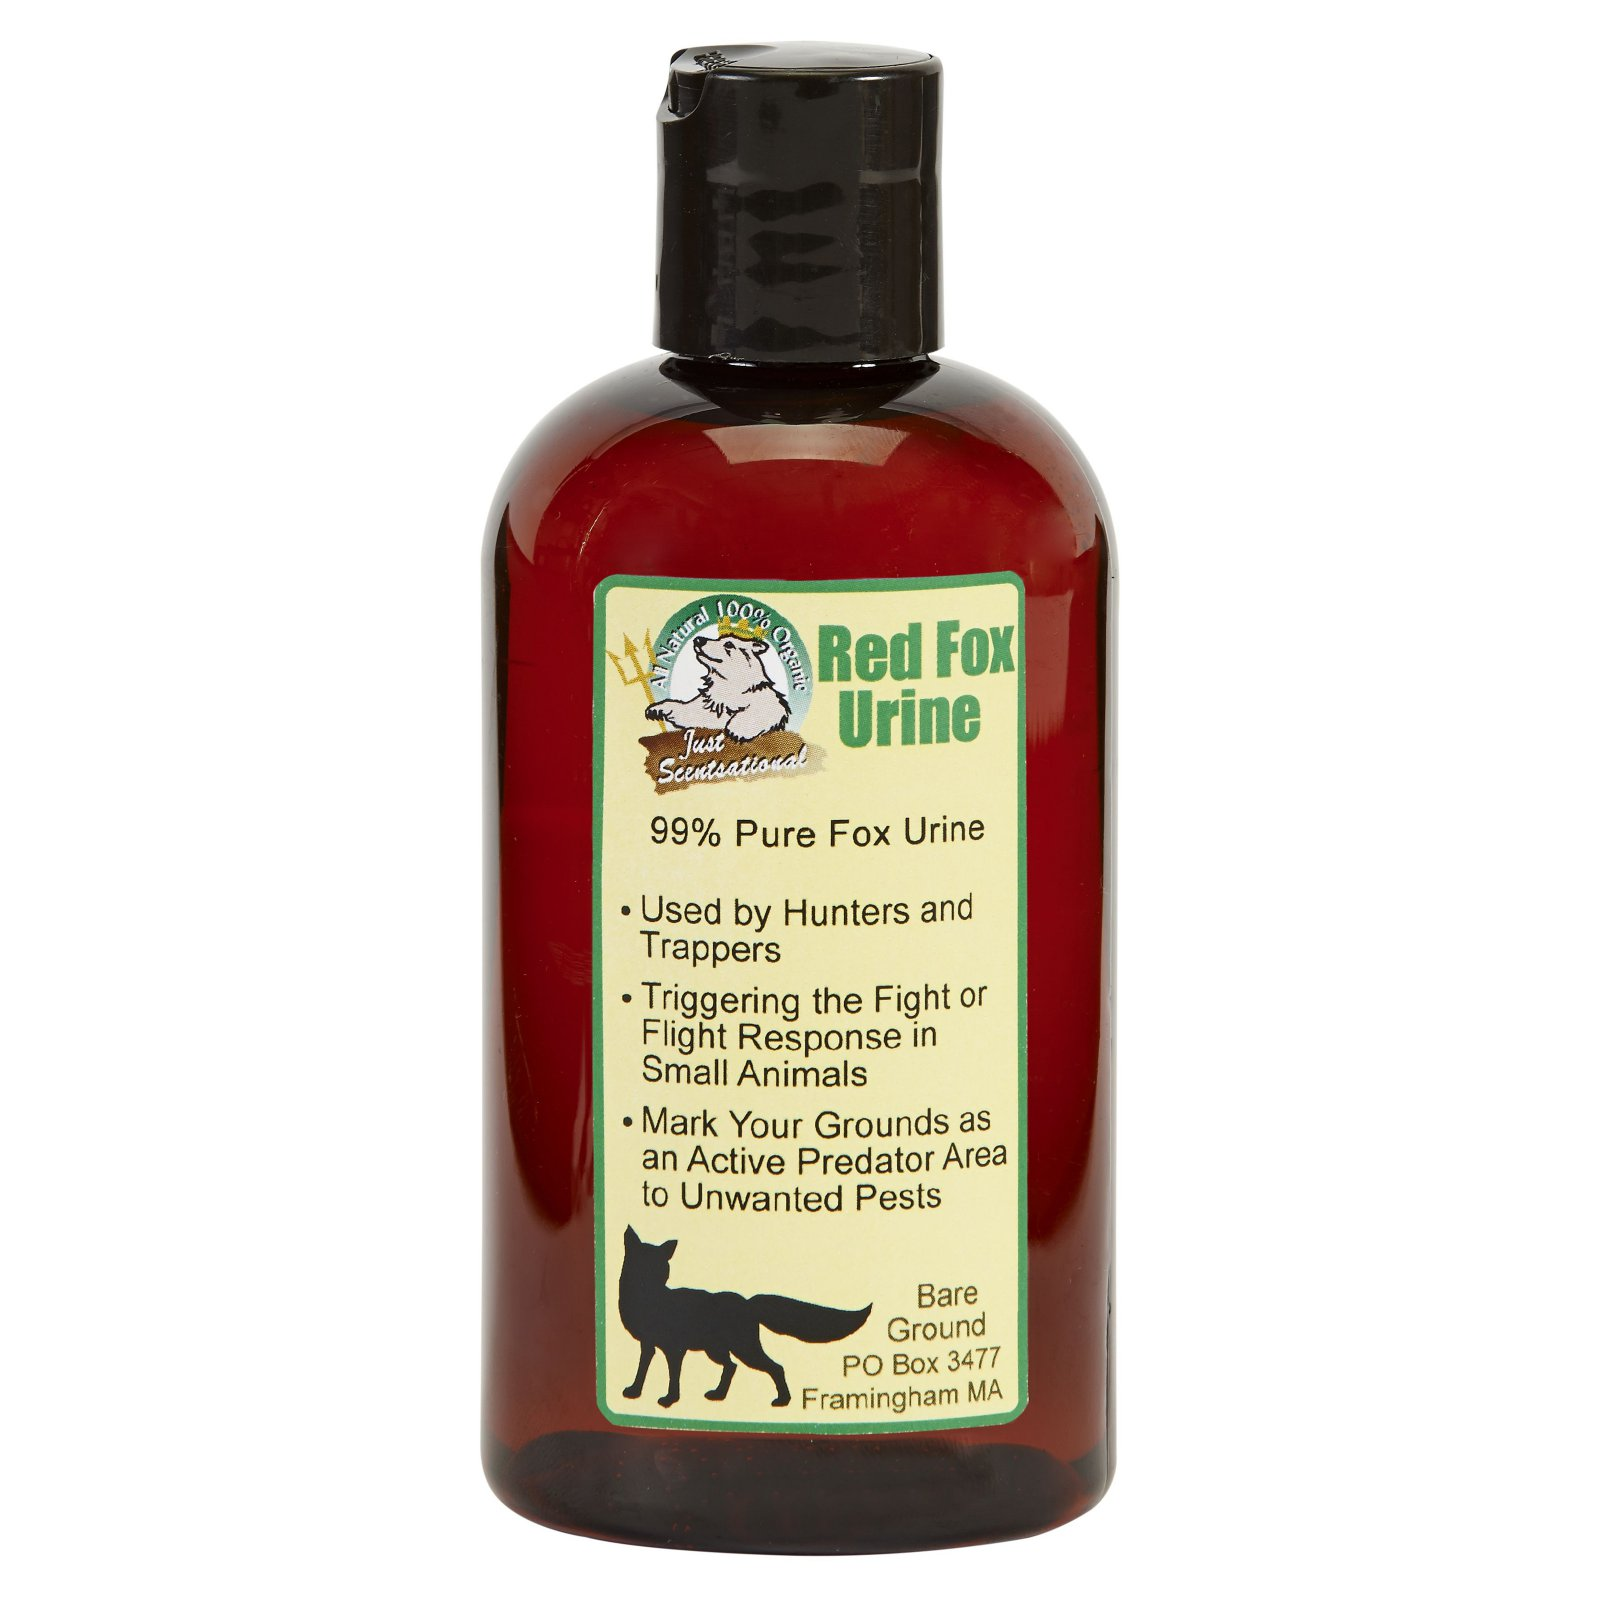 Just Scentsational Fox Urine By Bare Ground